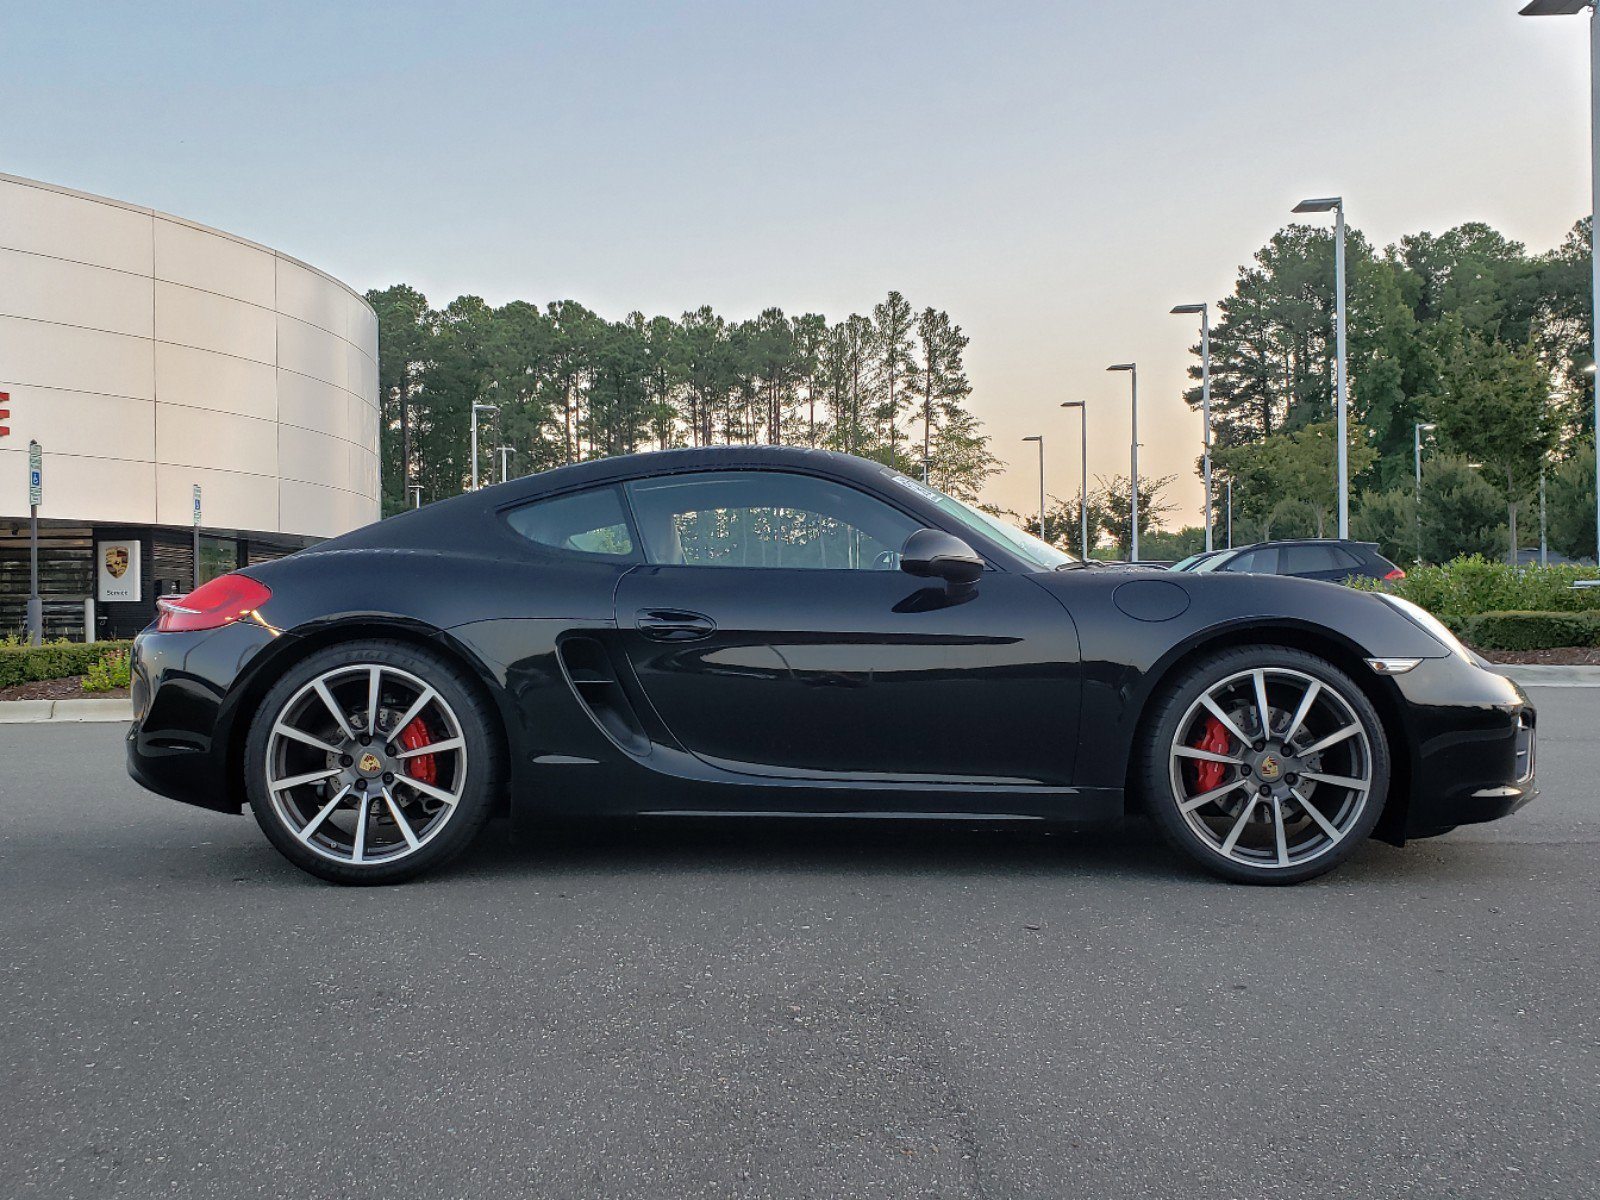 Used 2006 Porsche Cayman S Coupe In Pottstown Pa Autocom